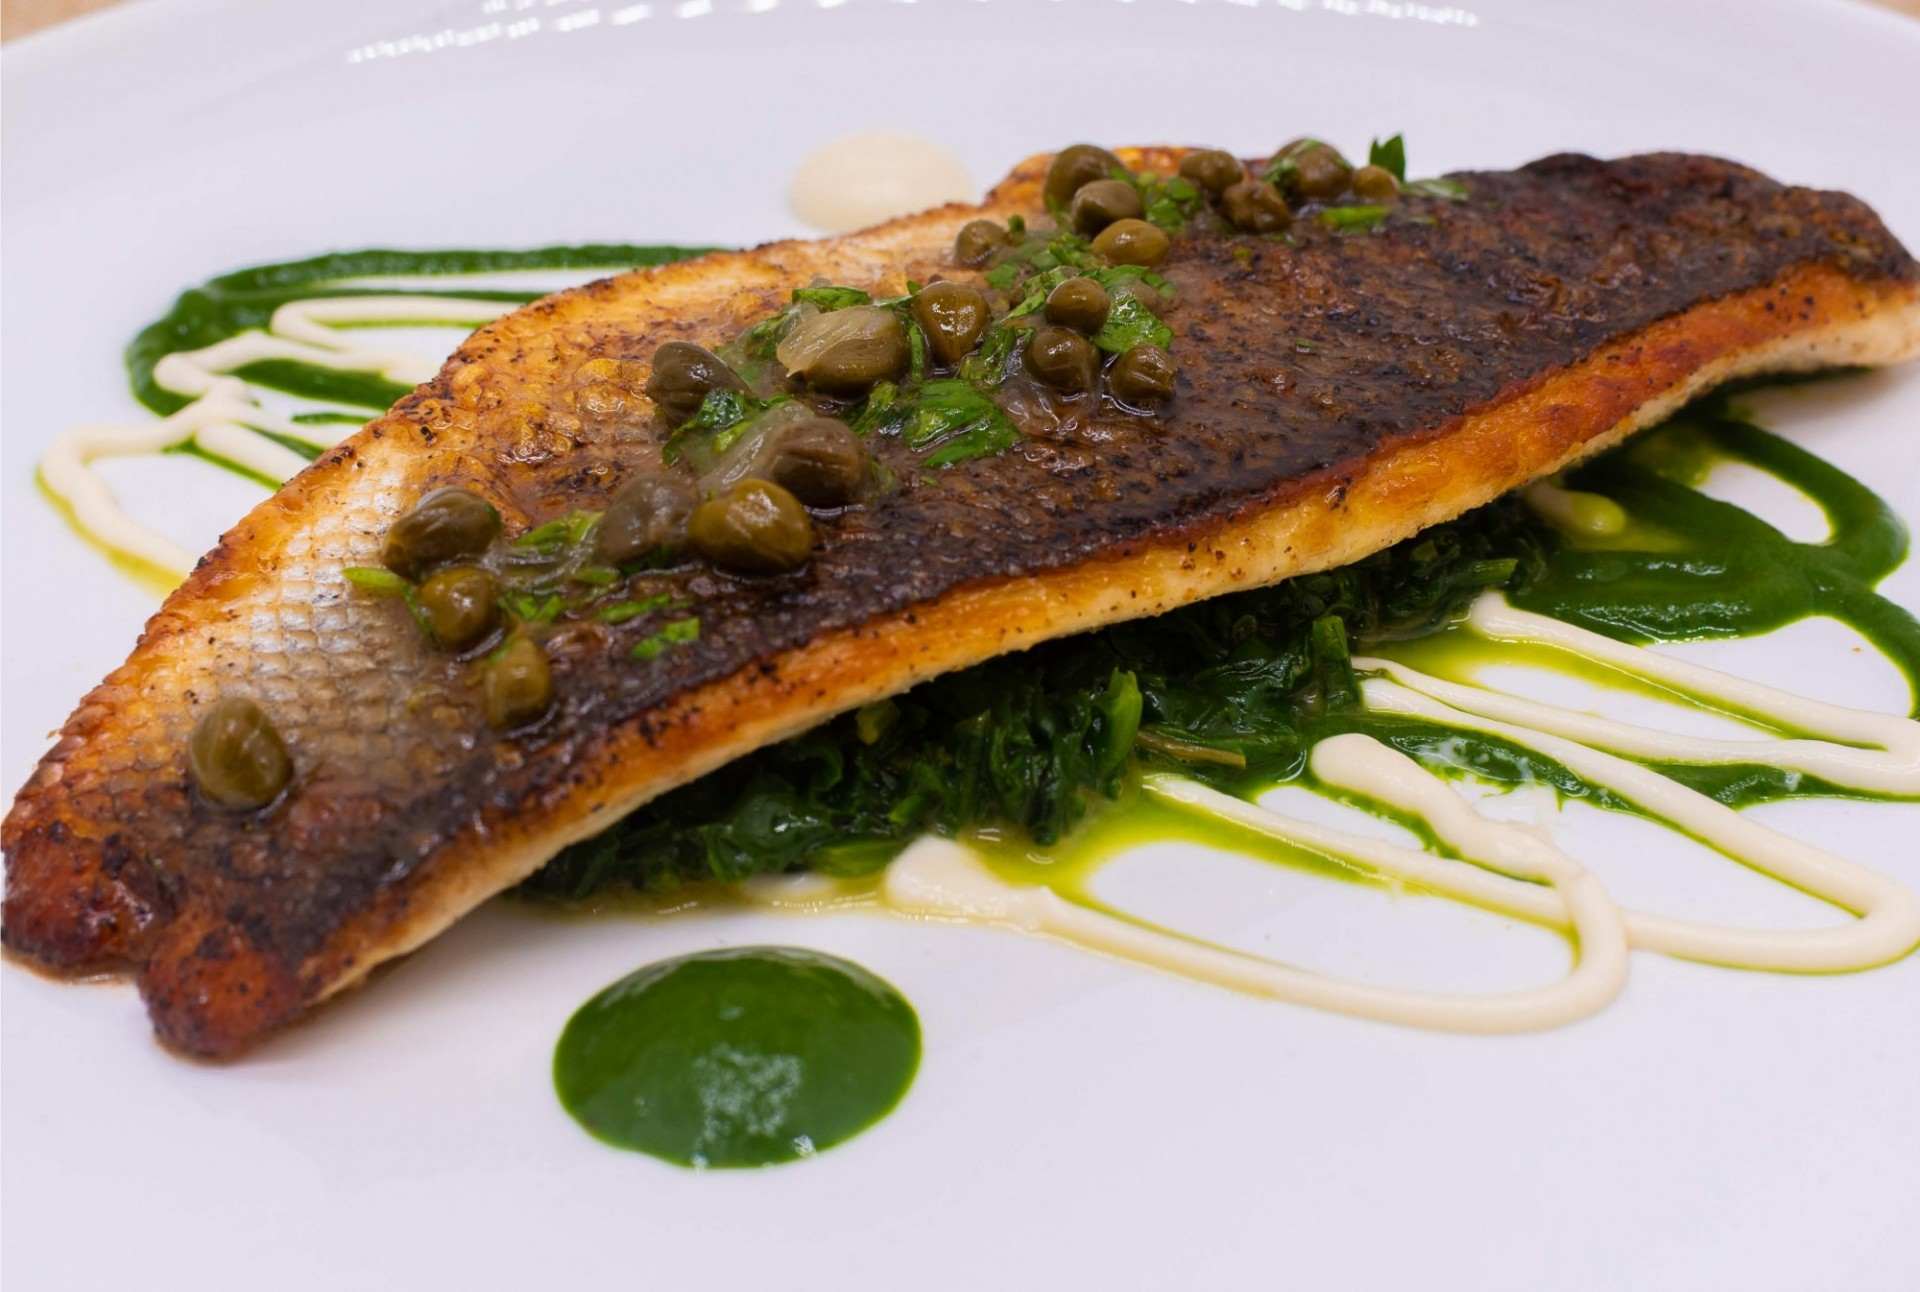 Pan seared trout on a bed of spinach